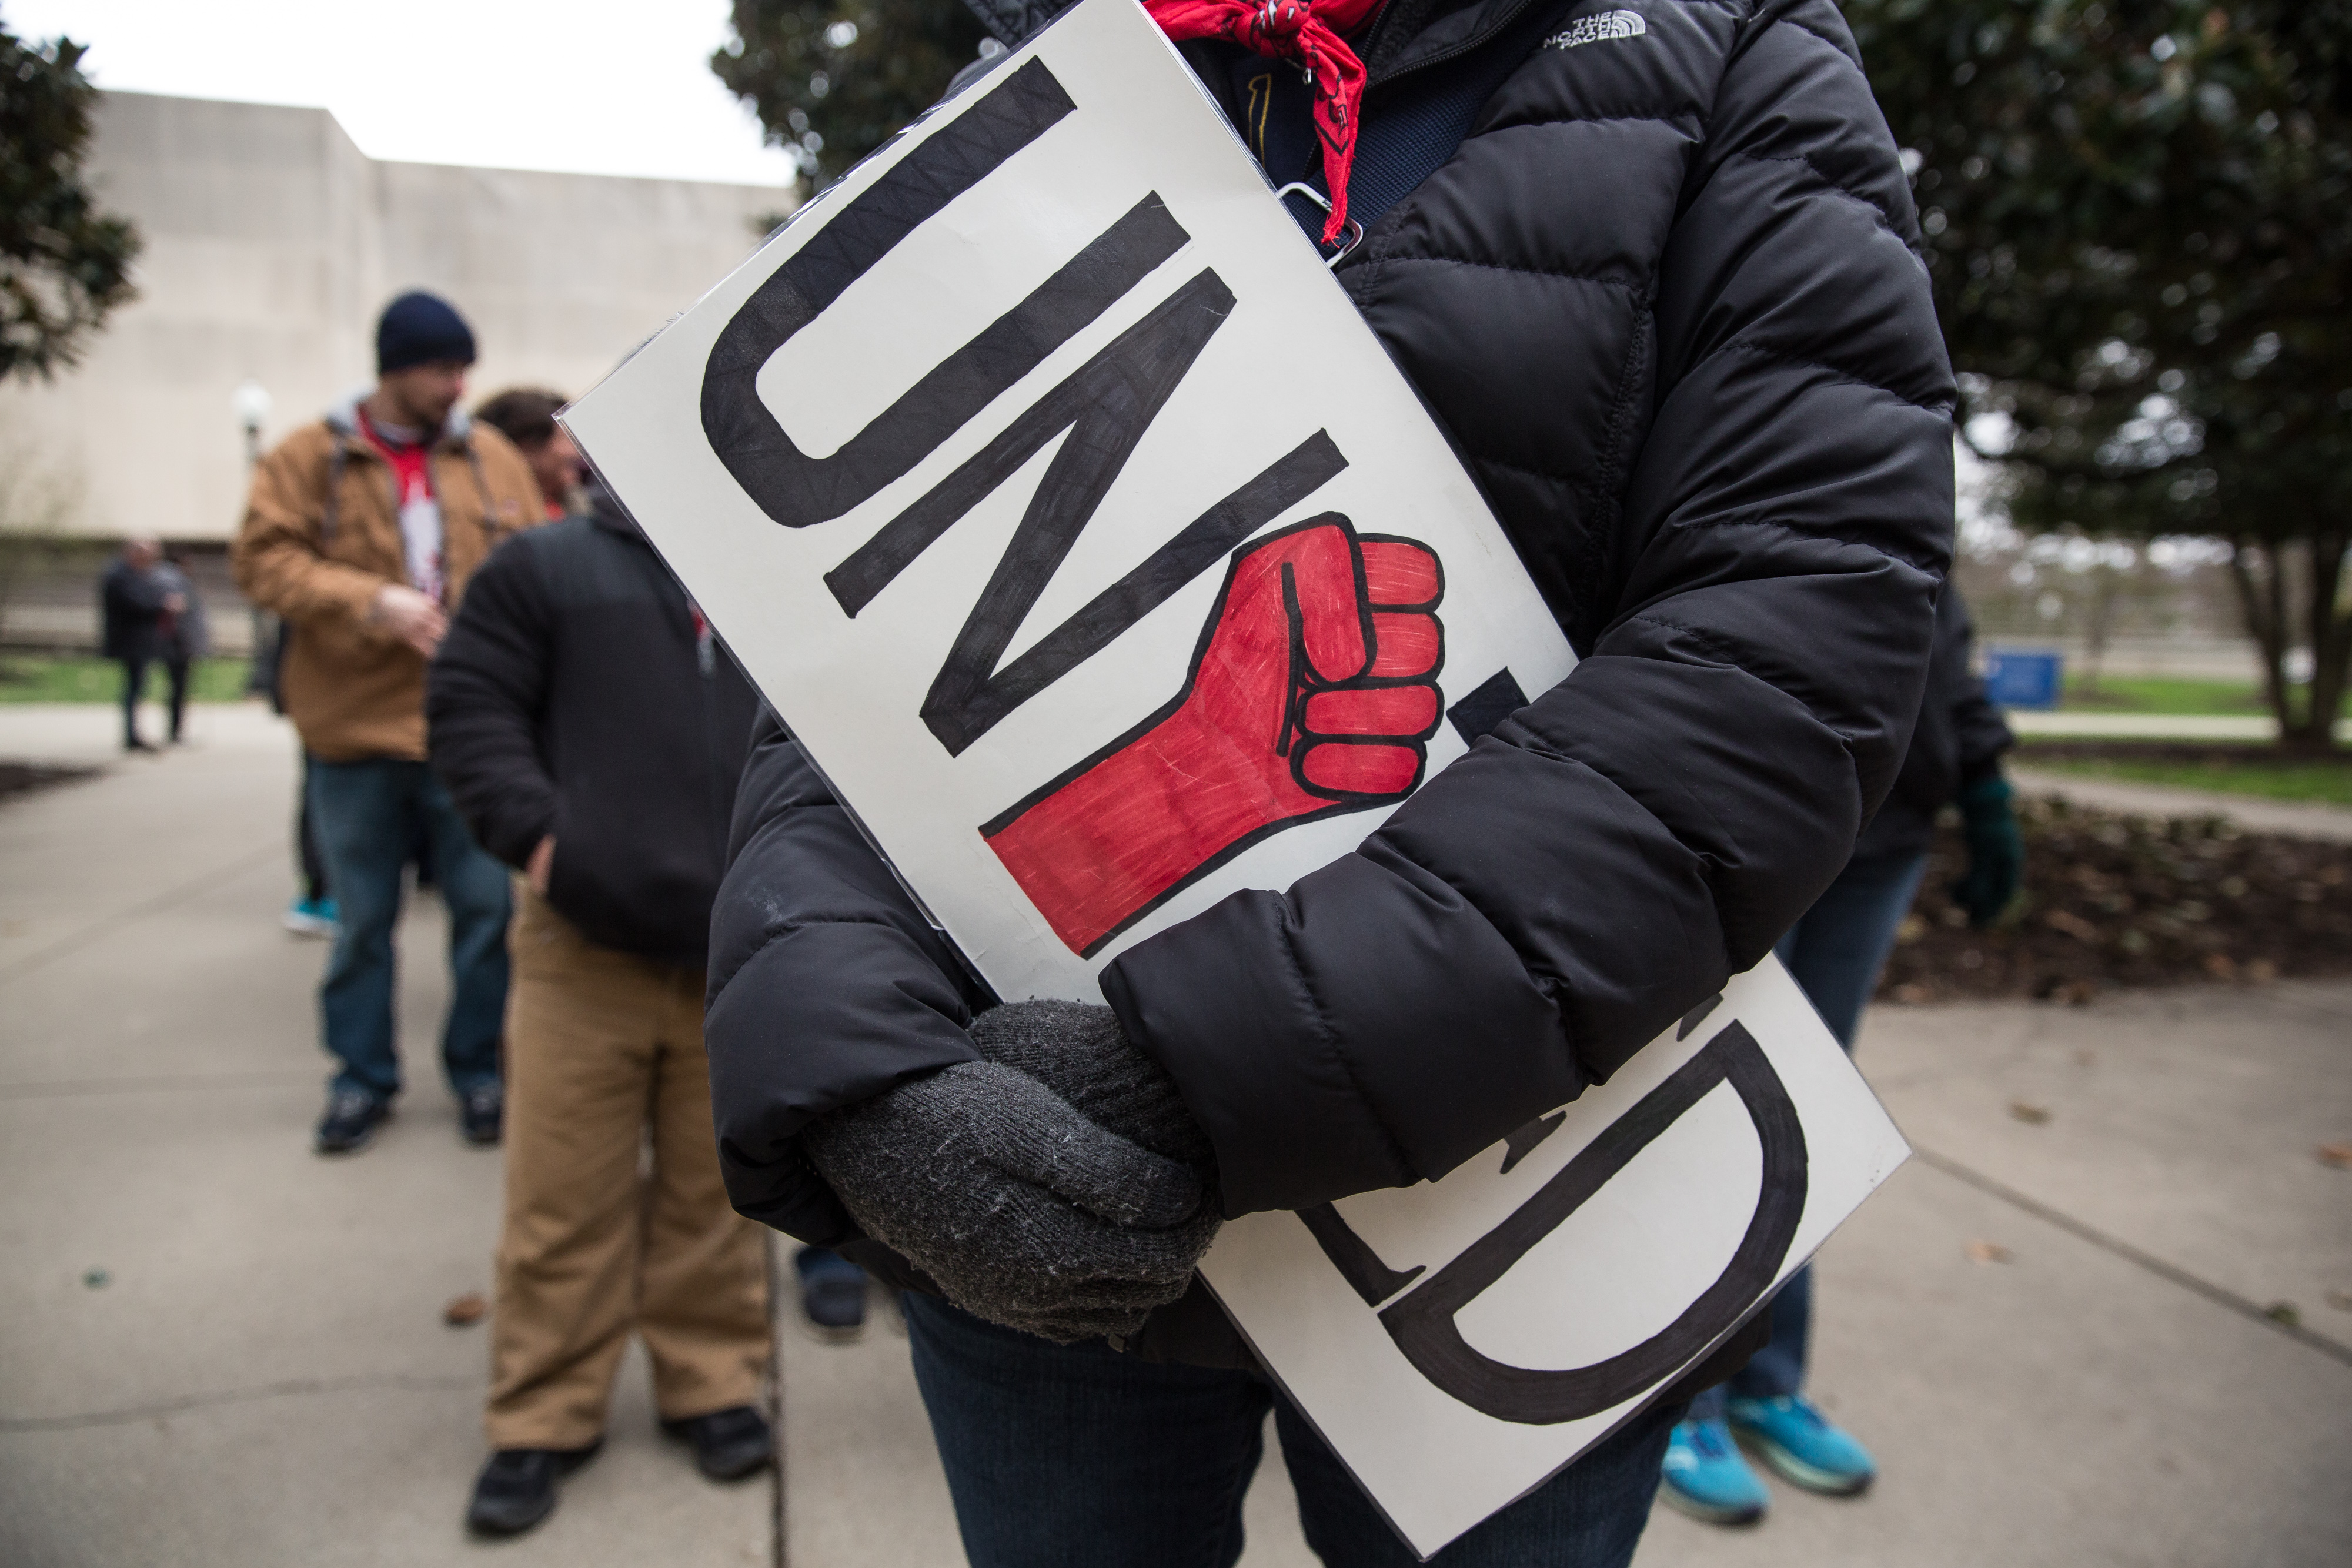 """A teacher held a """"United"""" sign during a rally outside the West Virginia Capitol in Charleston during a protest in March. Photo by Scott Heins/Bloomberg via Getty Images"""